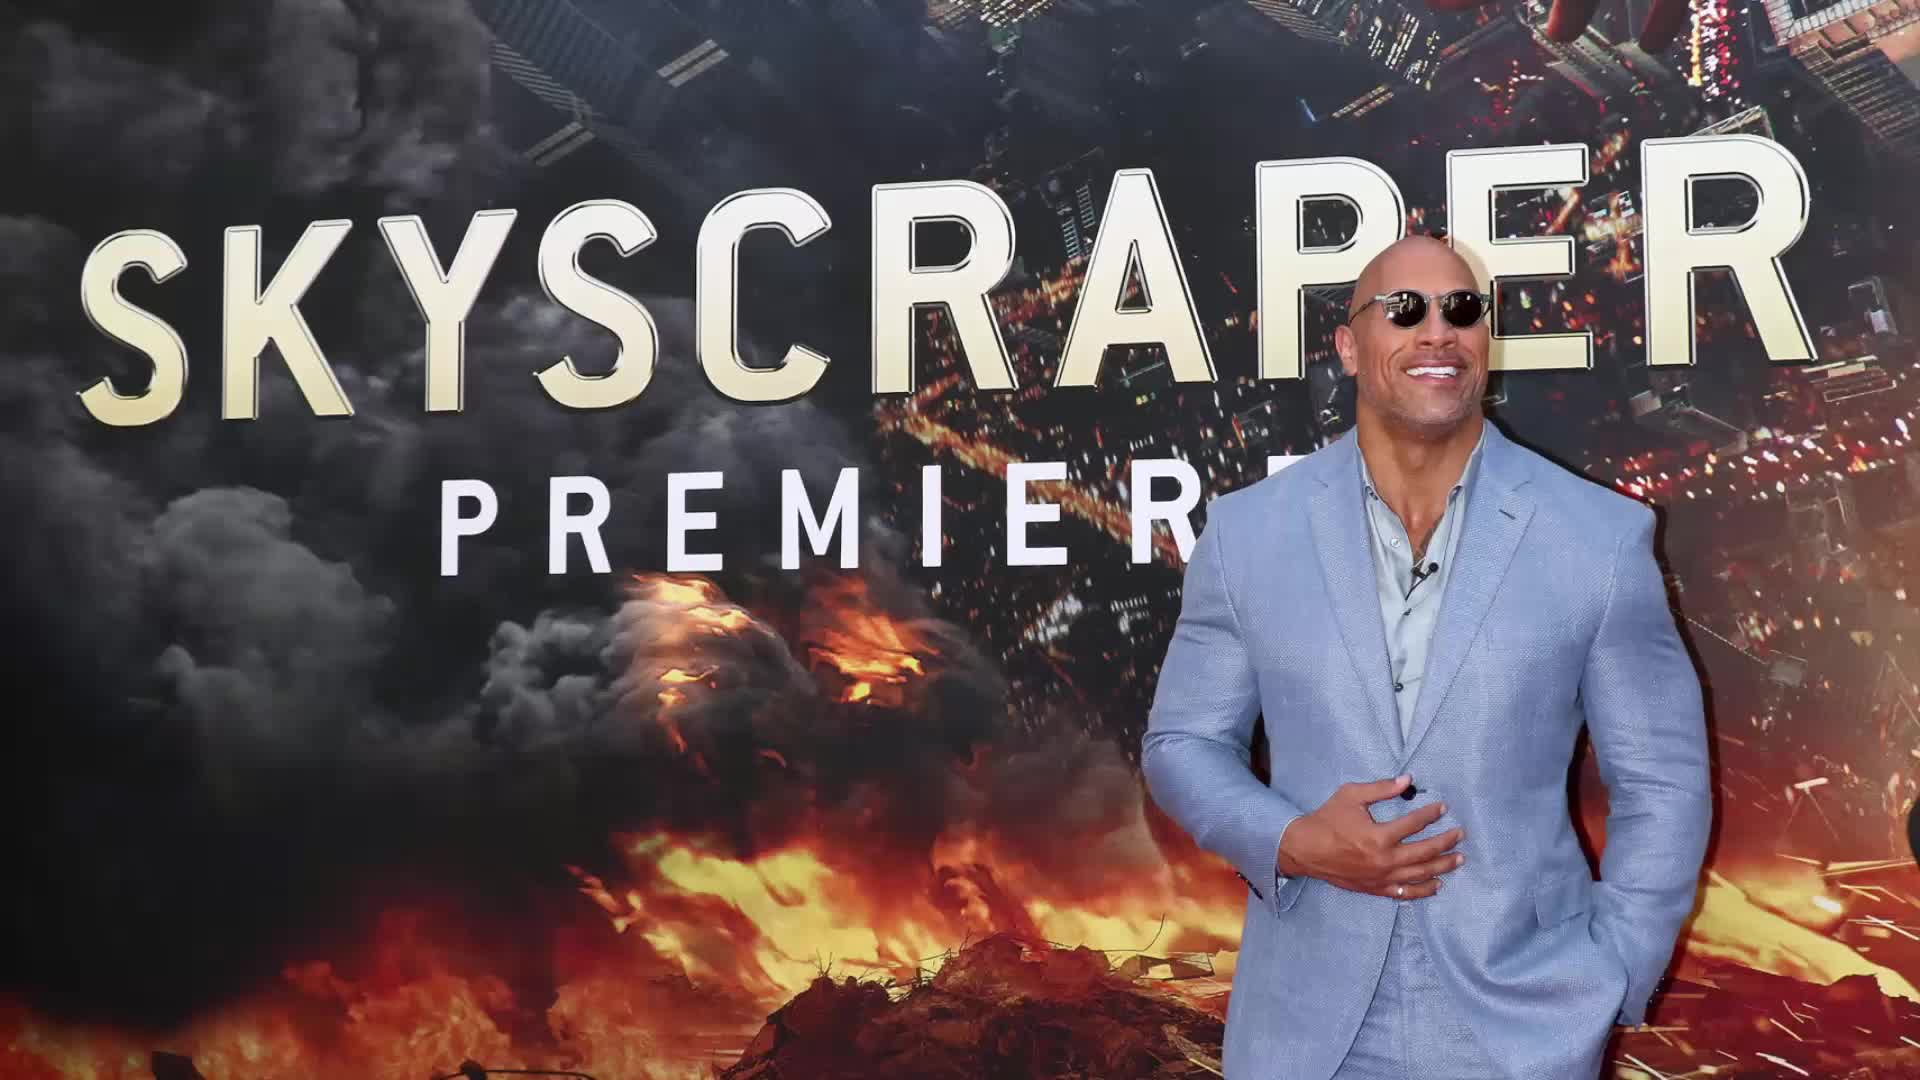 The Rock says 'generation snowflake' is 'putting us backwards'